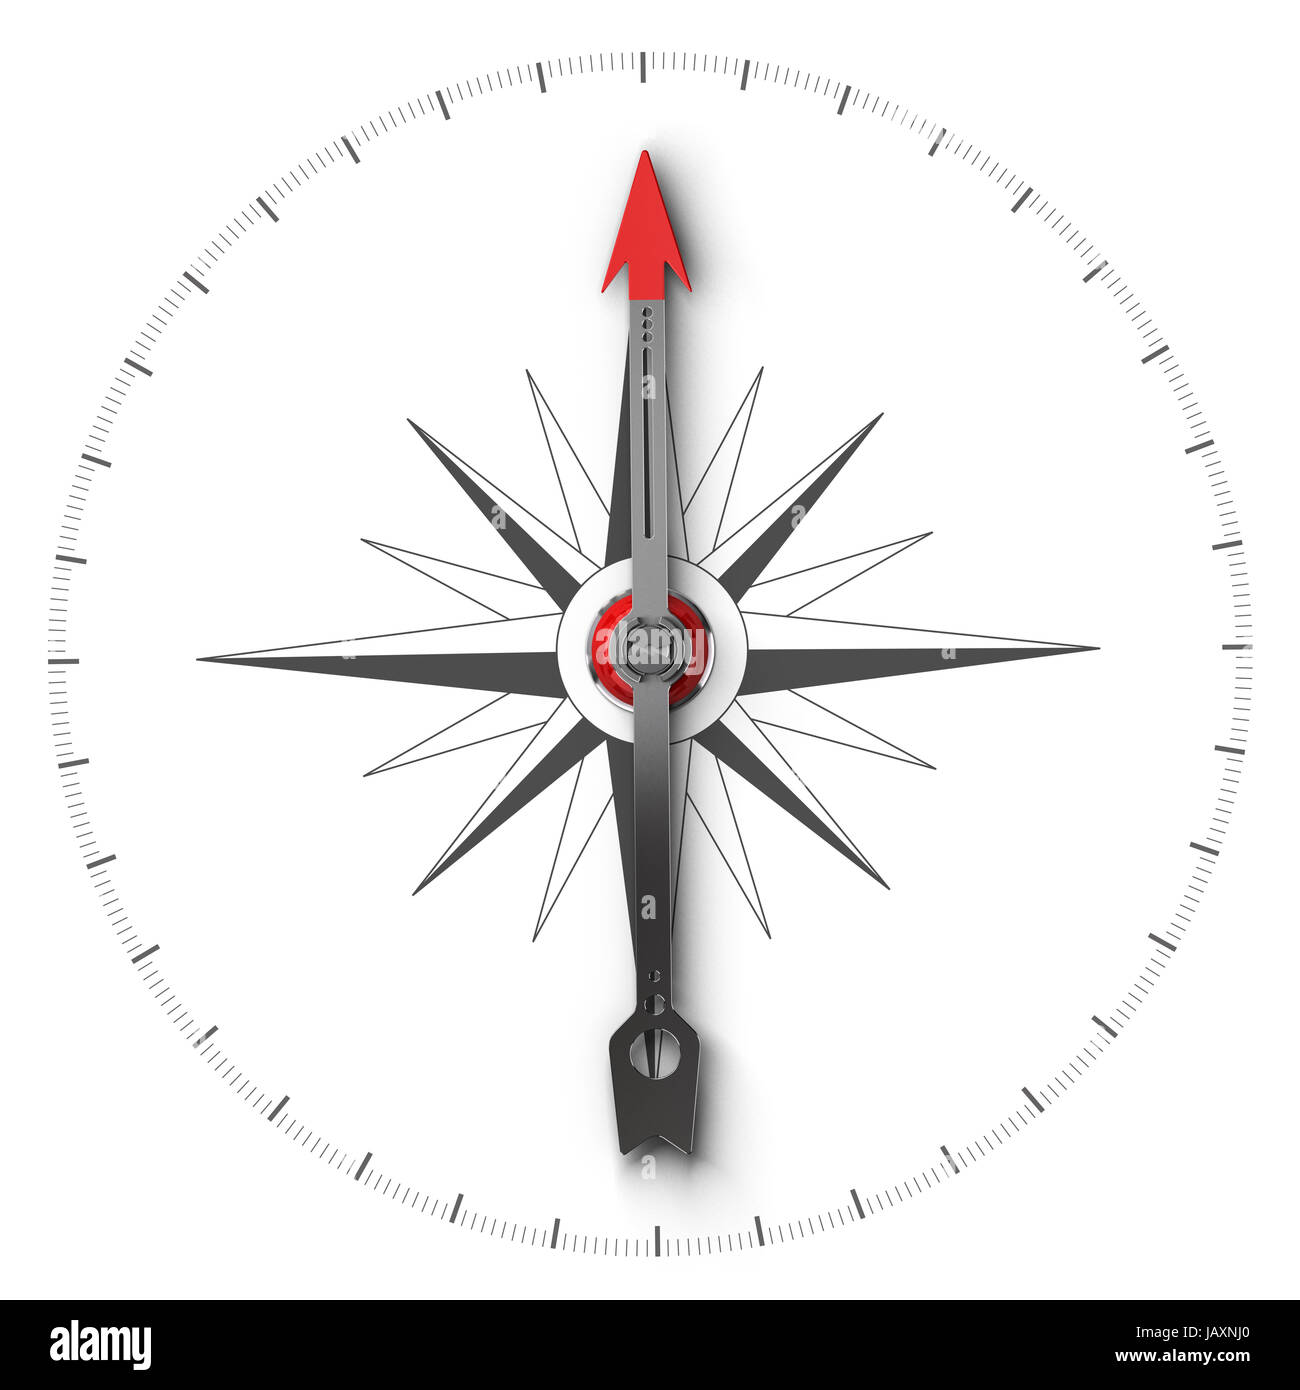 Top View Illustration Of A Compass Over White Background Symbol Of